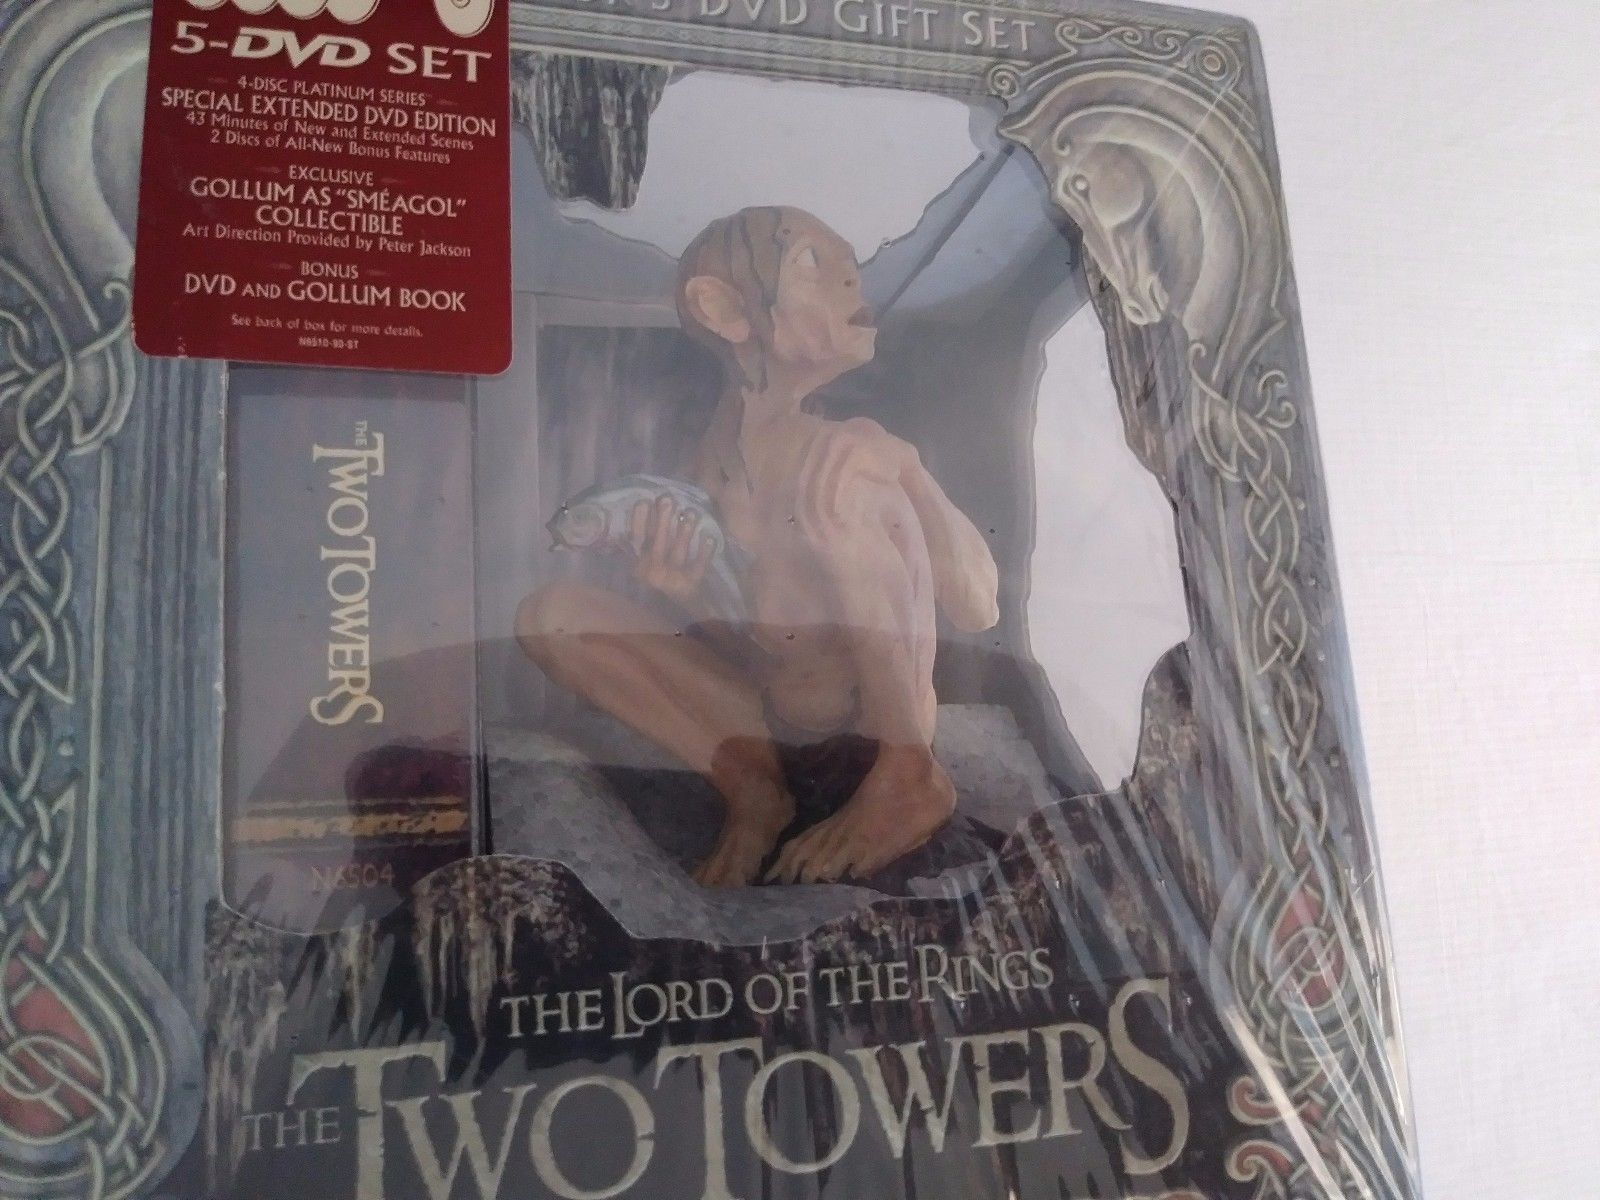 The Lord Of The Rings The Two Towers Extended Edition Weta Statue Gollum Smeagol The Two Towers Statues For Sale Lord Of The Rings